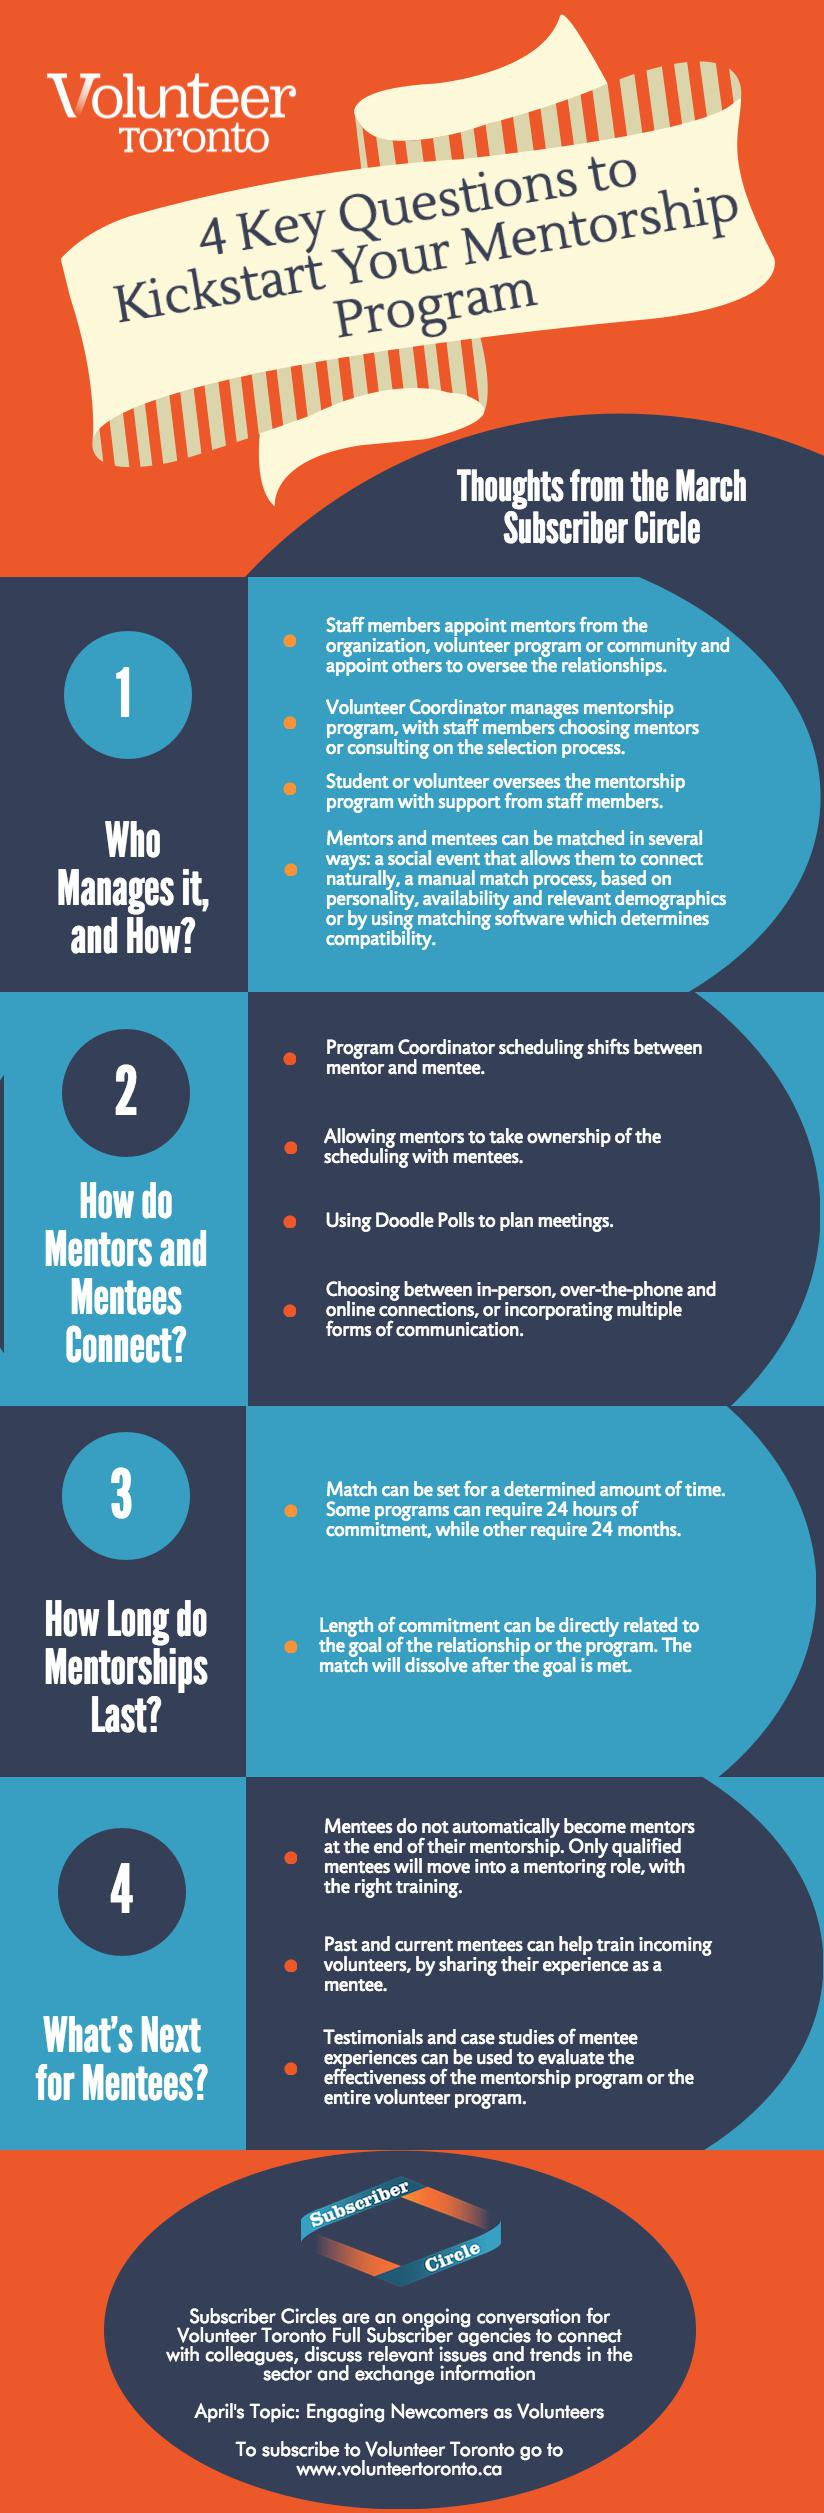 Infographic: 4 Key Questions to Kickstart Your Mentorship Program